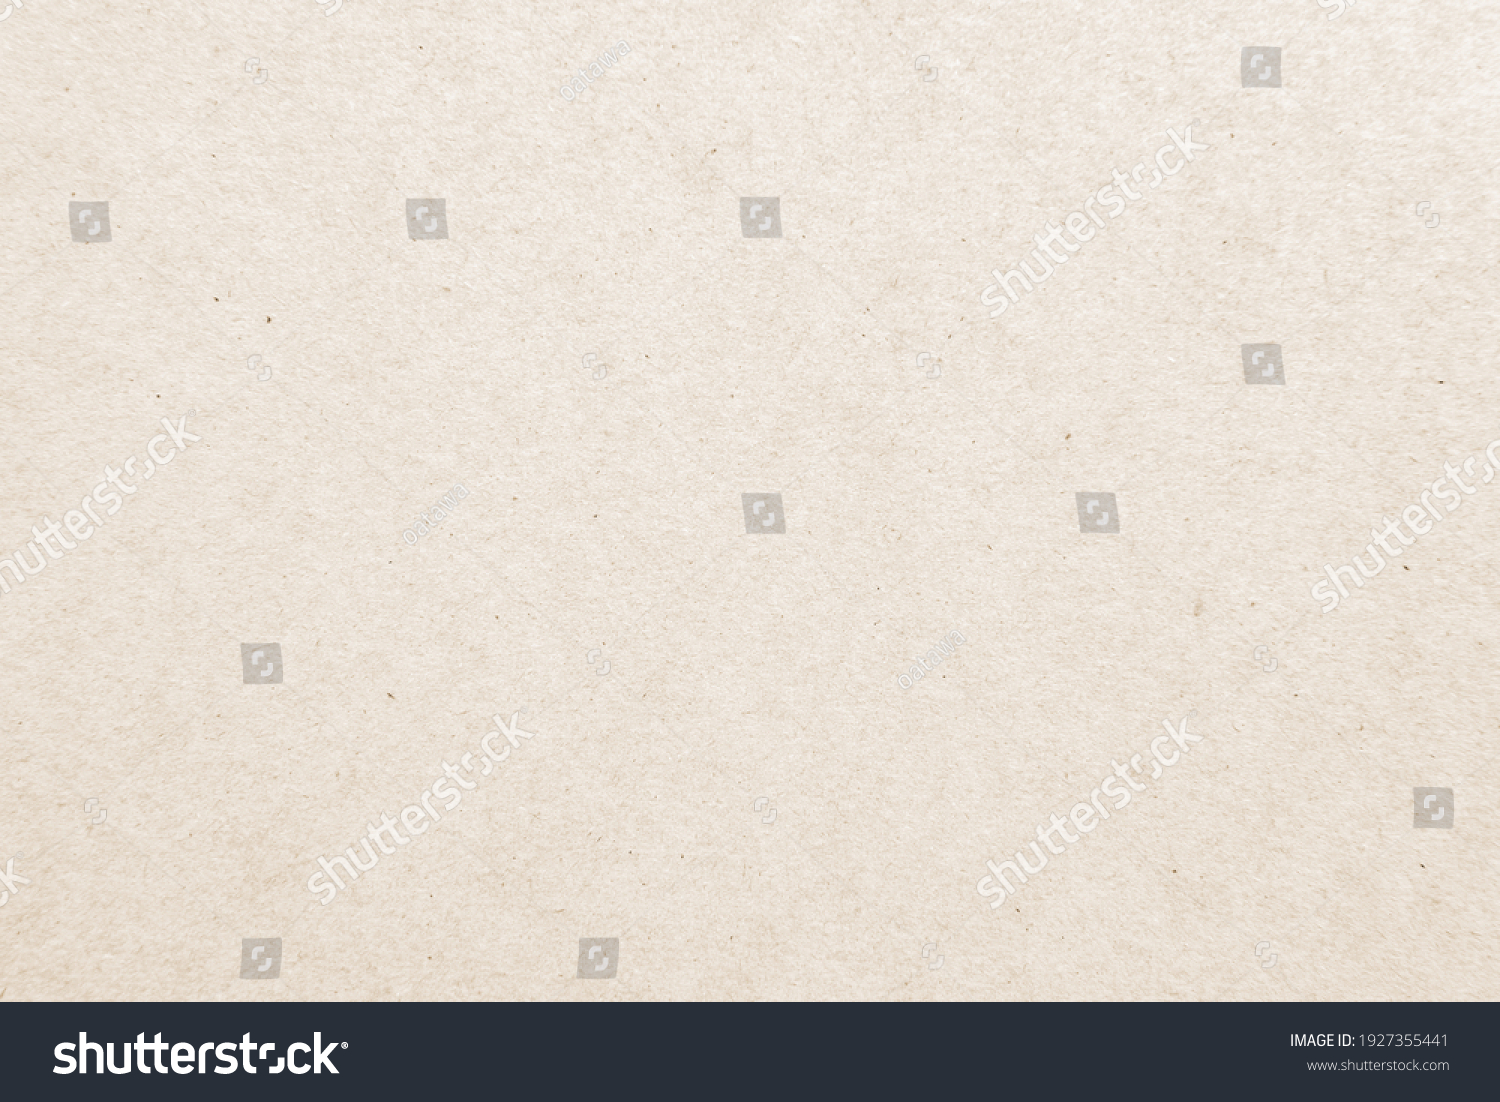 Paper texture cardboard background. Grunge old paper surface texture. #1927355441